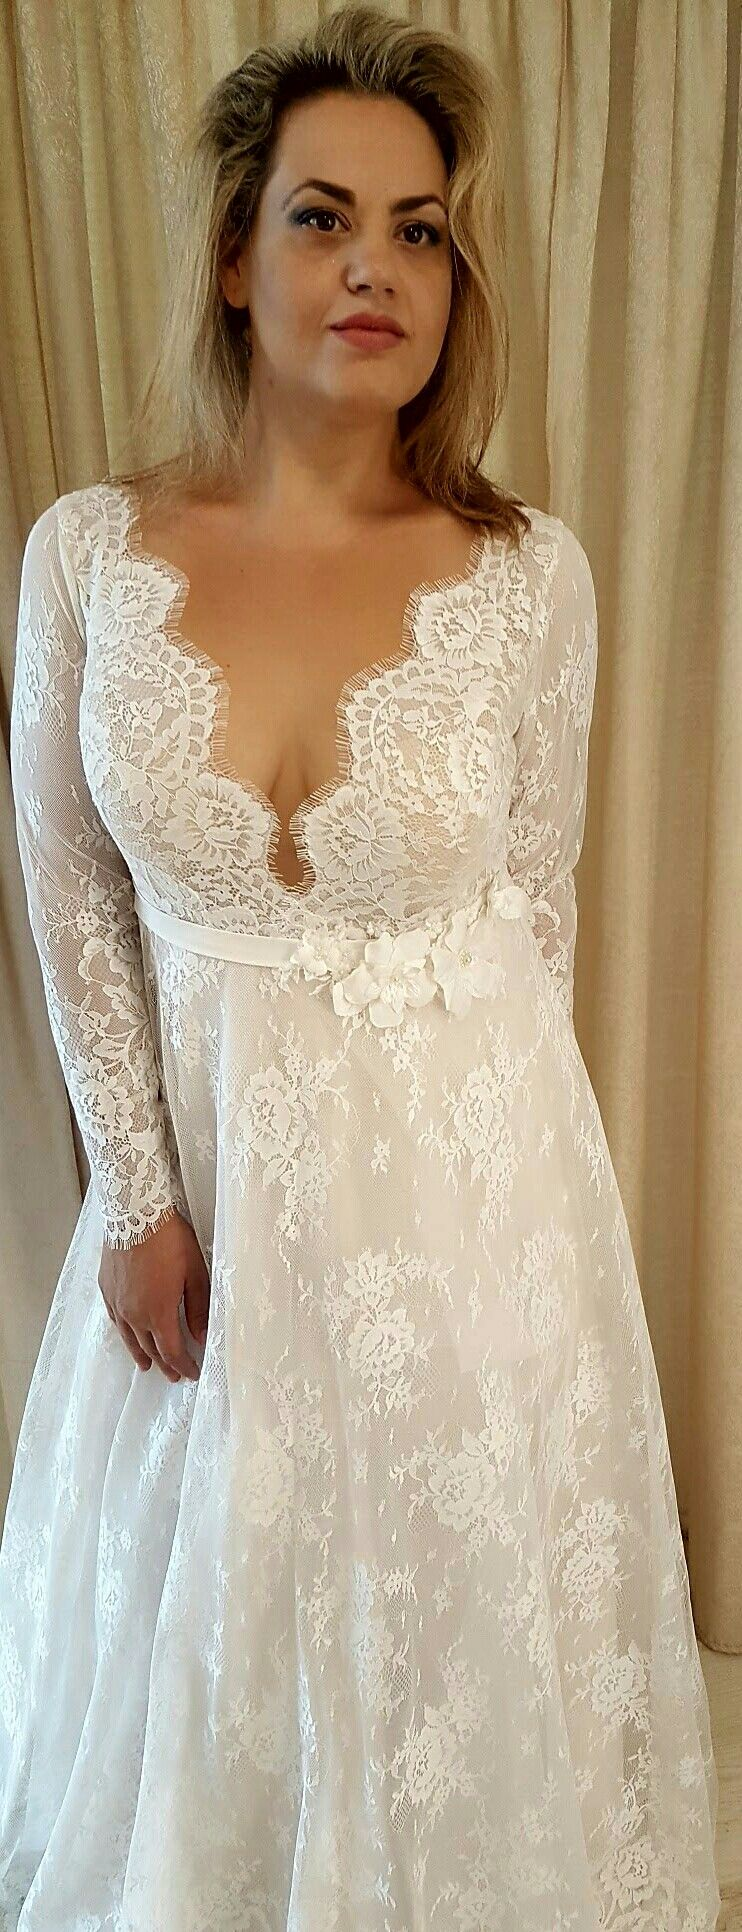 Plus Size Romantic French Lace Wedding Gown With A Deep V Neck And Long Sleeves Sophia Studio Levana 2018